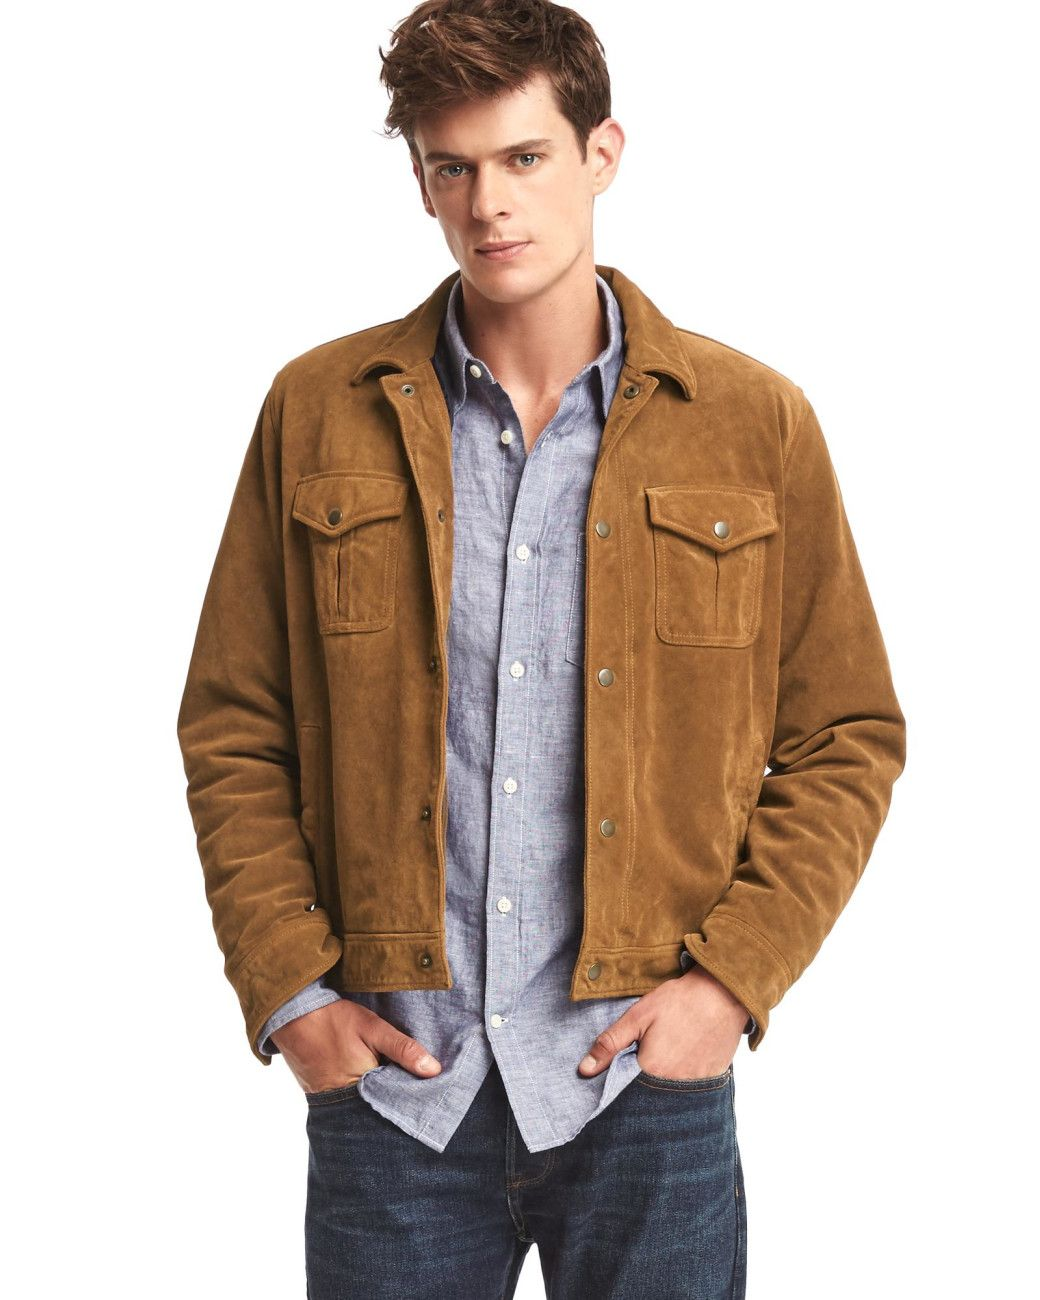 4f771510e Men's Suede Trucker Jacket   MEN'S AW16/17 Jackets and Coats ...